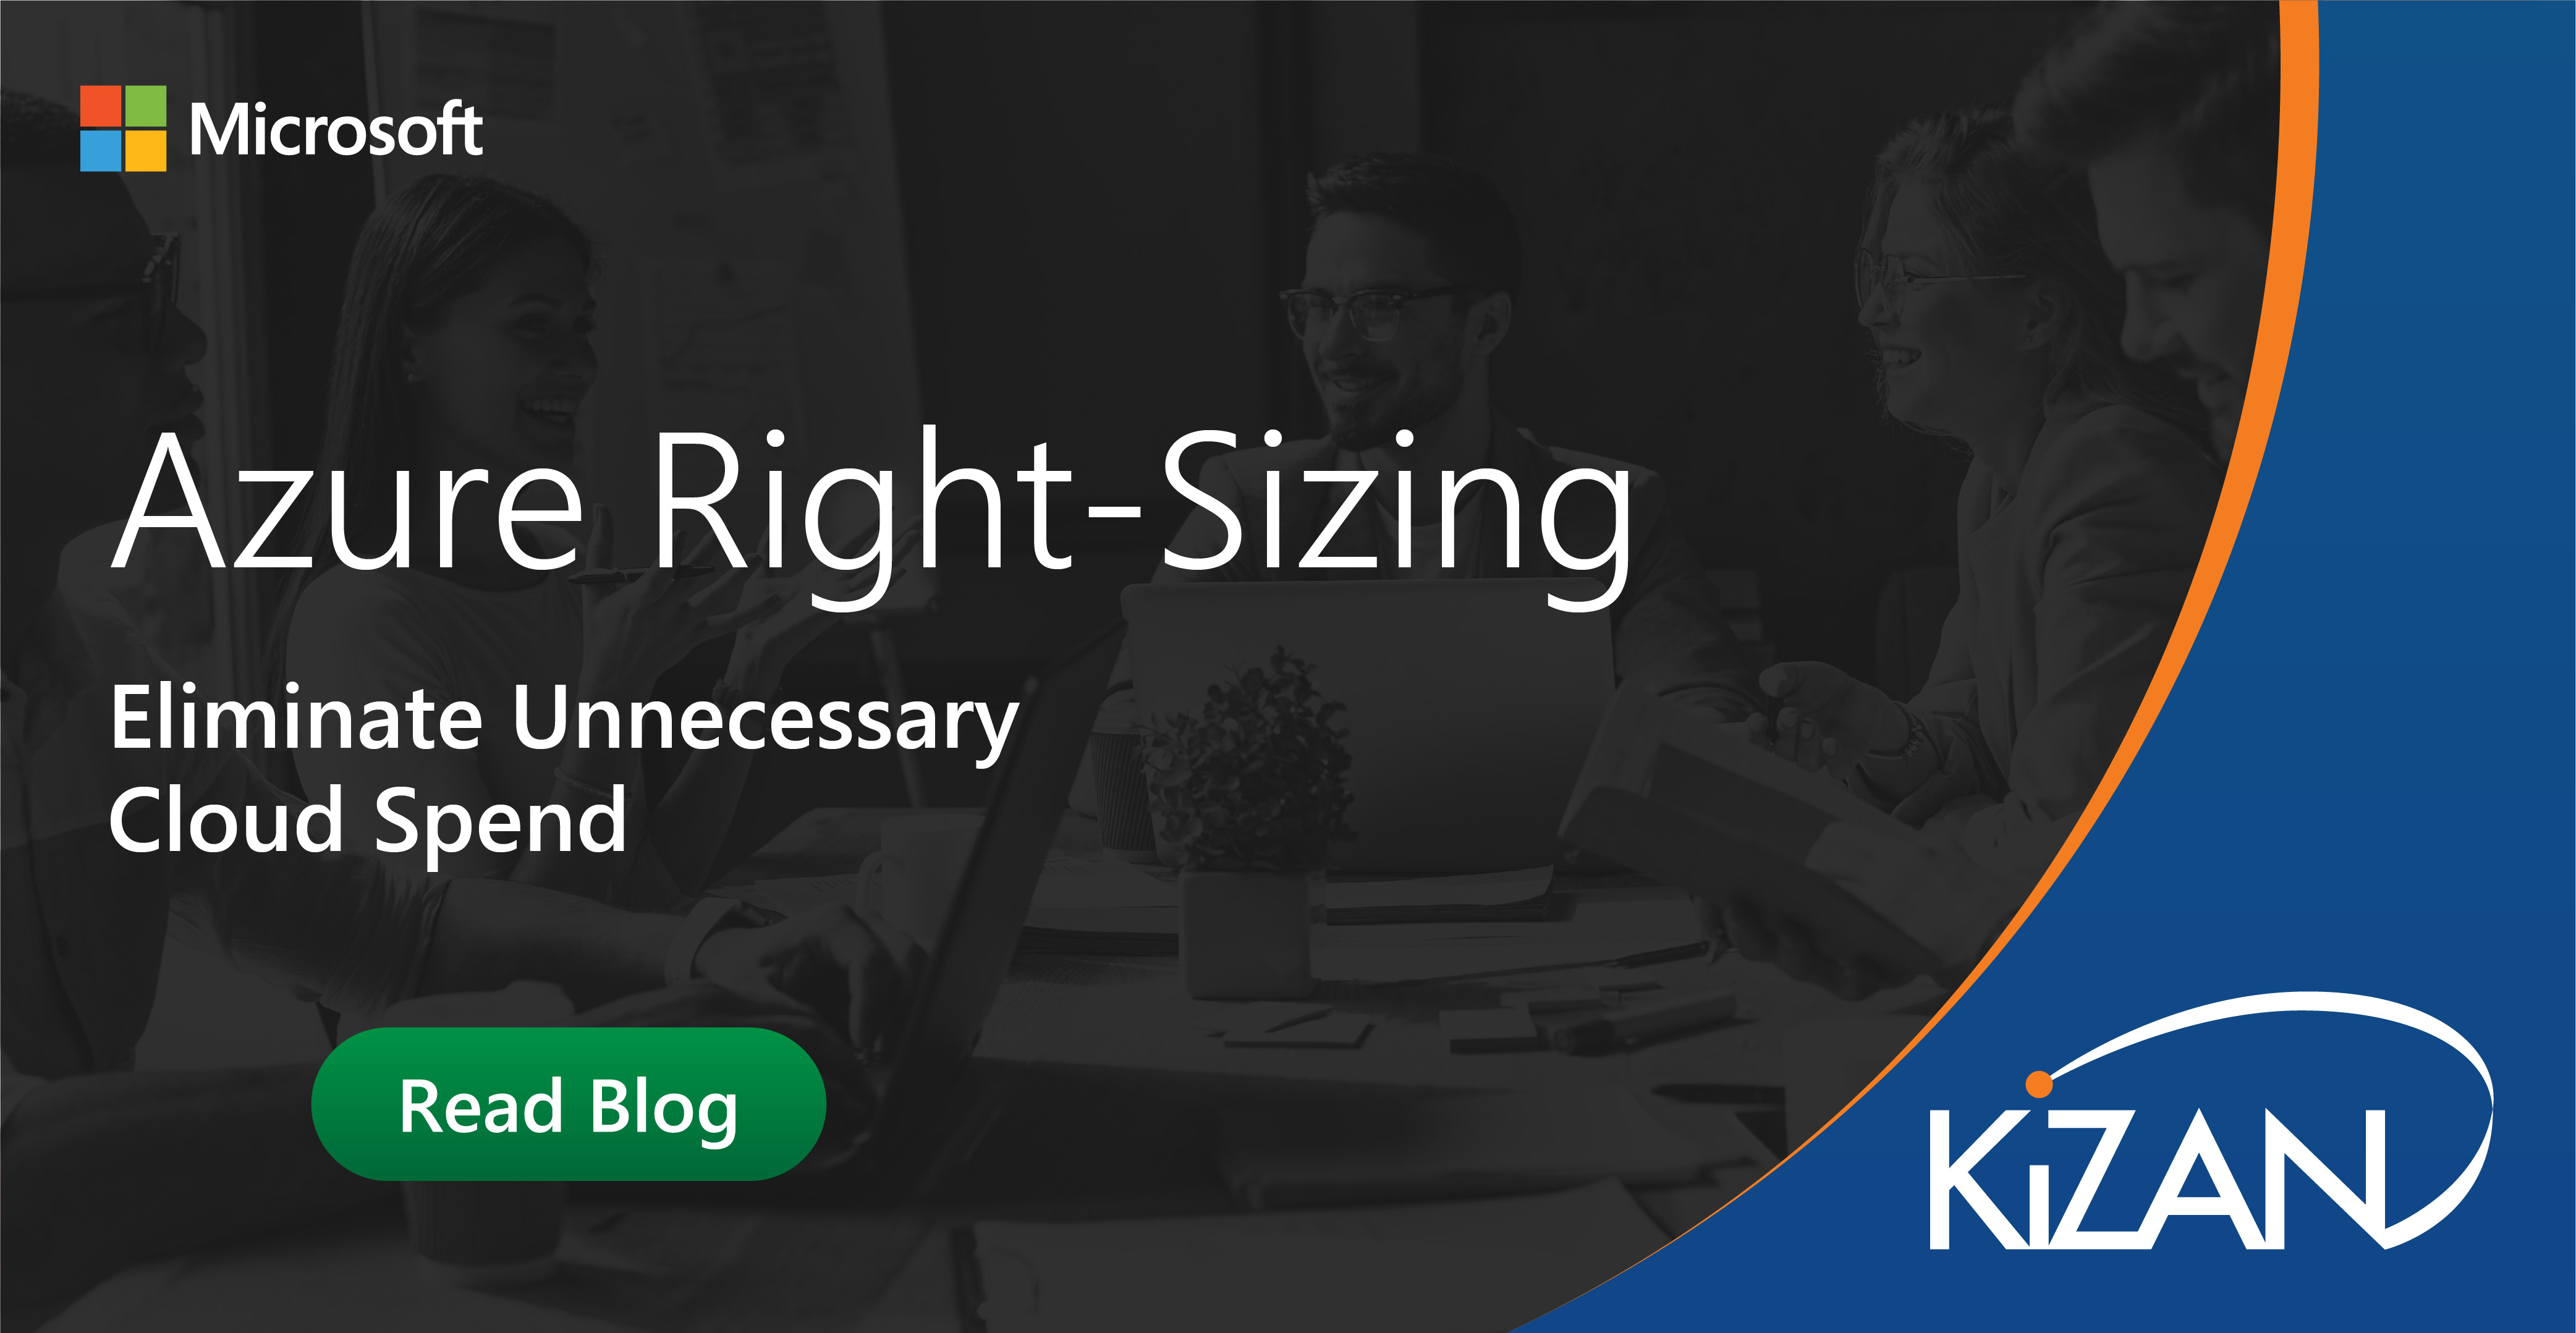 Azure Right-Sizing: Eliminate Unnecessary Cloud Spend